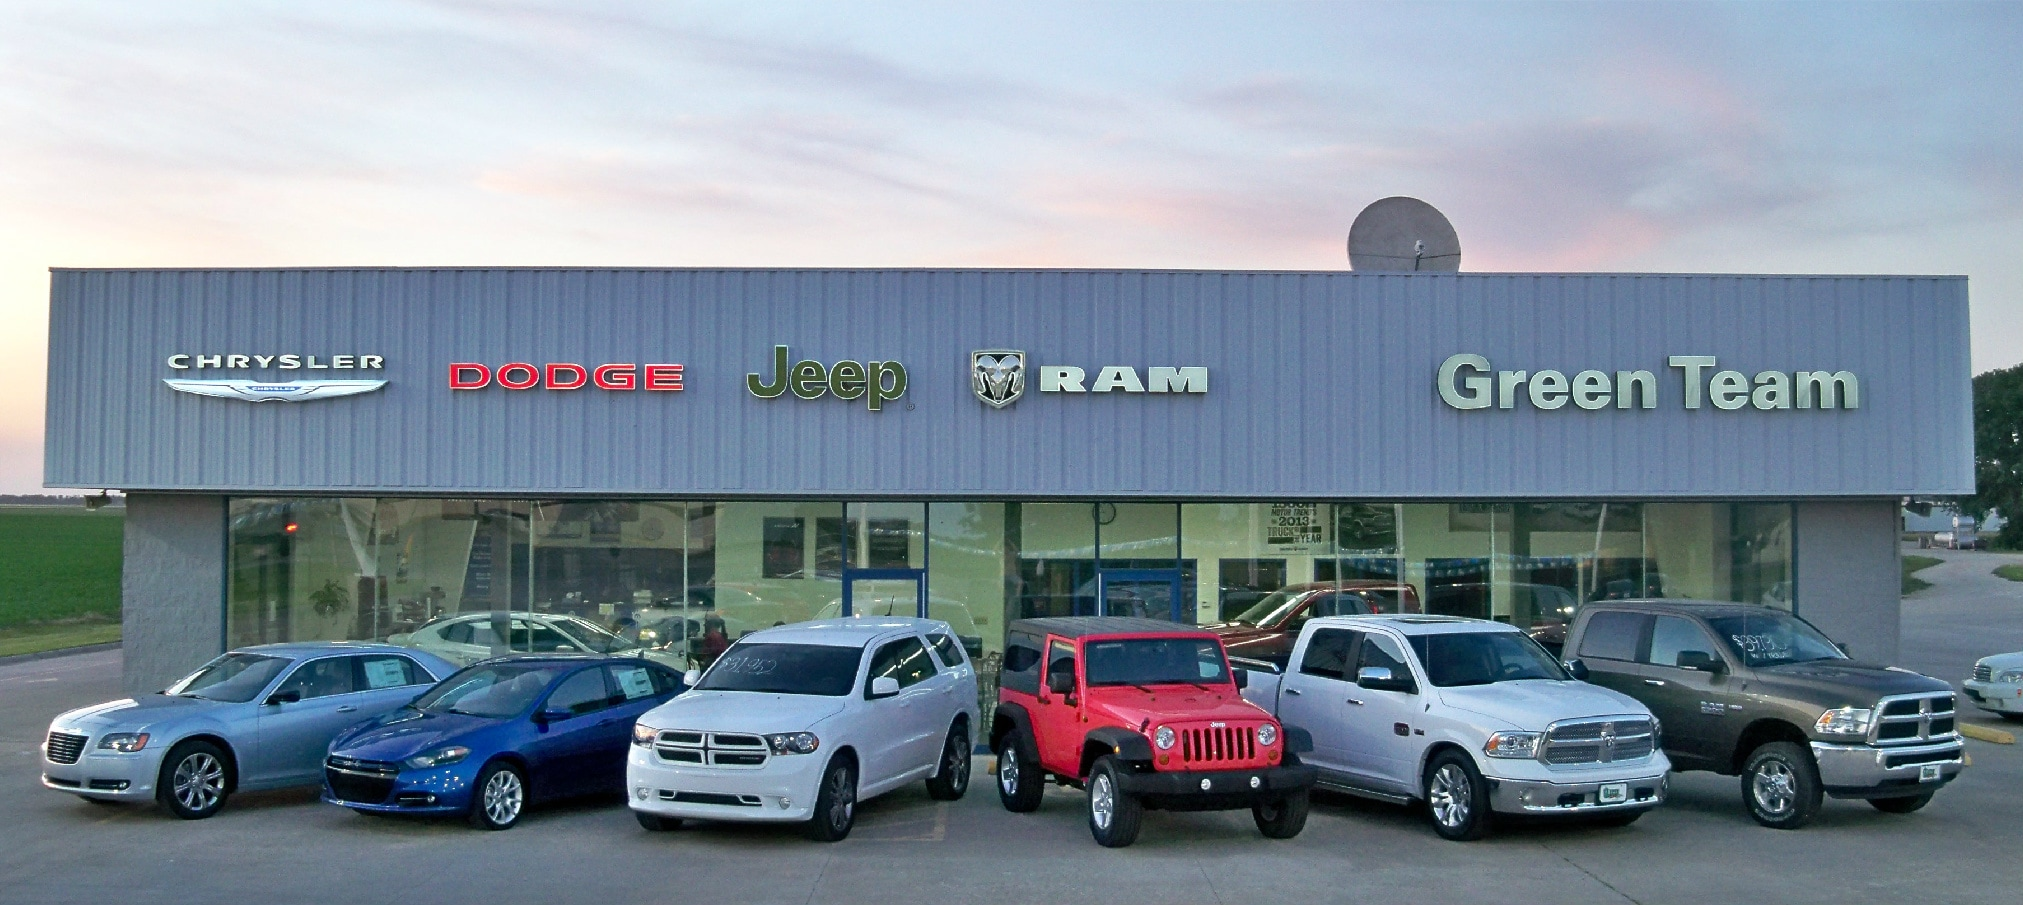 jeep dealer fiat special car chrysler wrangler columbia dealership and ram dodge new jl used